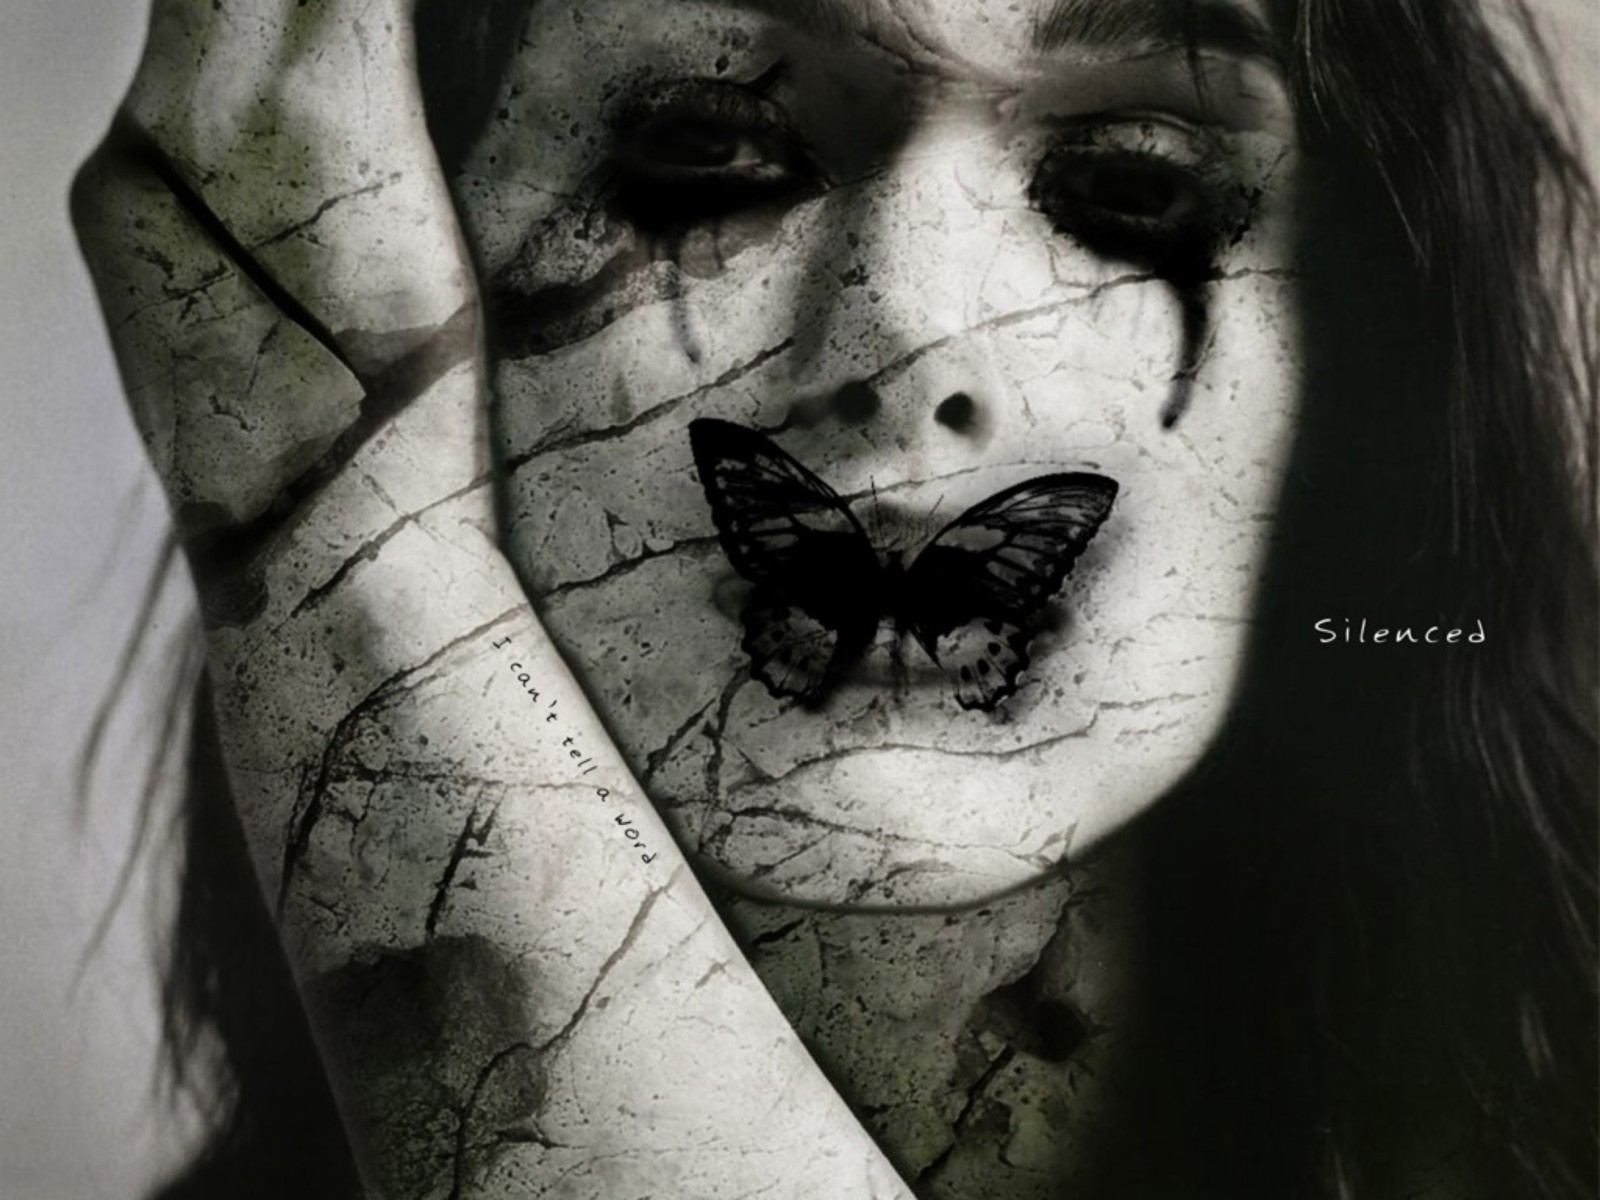 horror emo Gothic silence HD Wallpaper